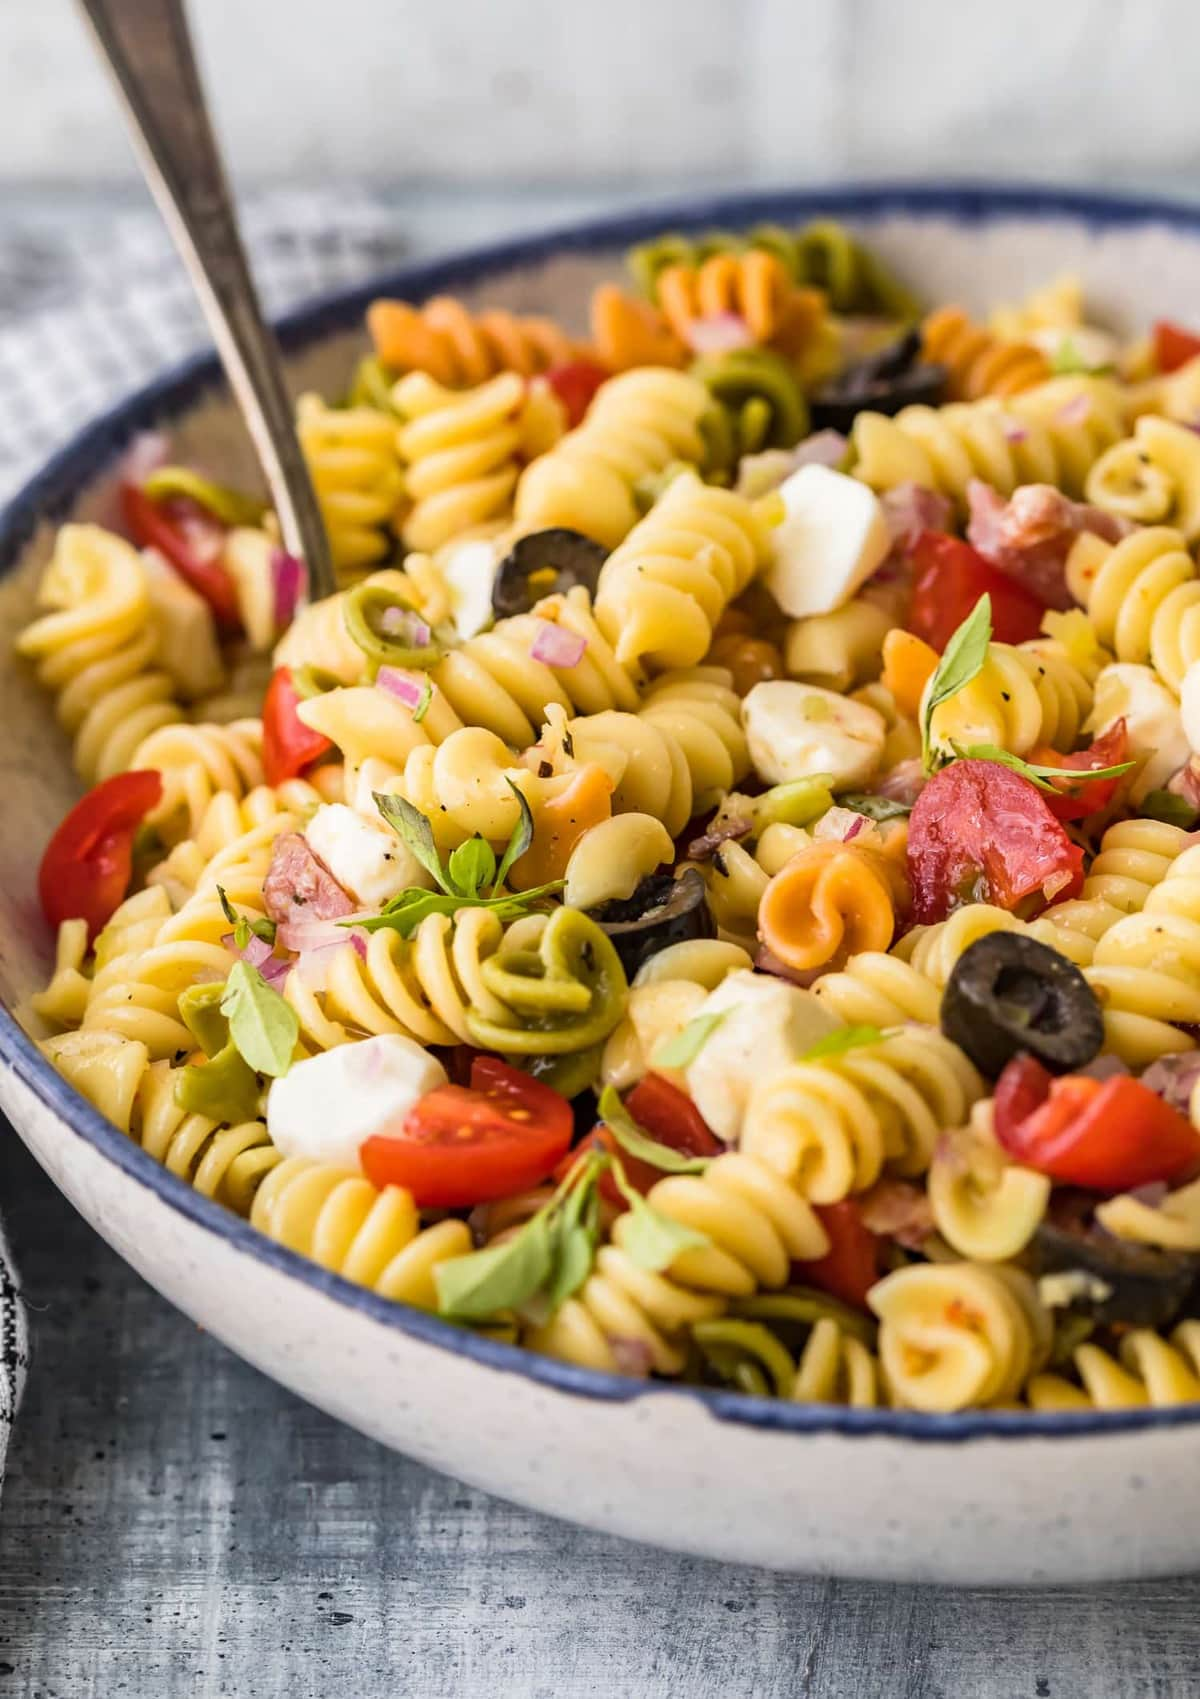 Classic Italian Pasta Salad Recipe in a bowl on a work surface